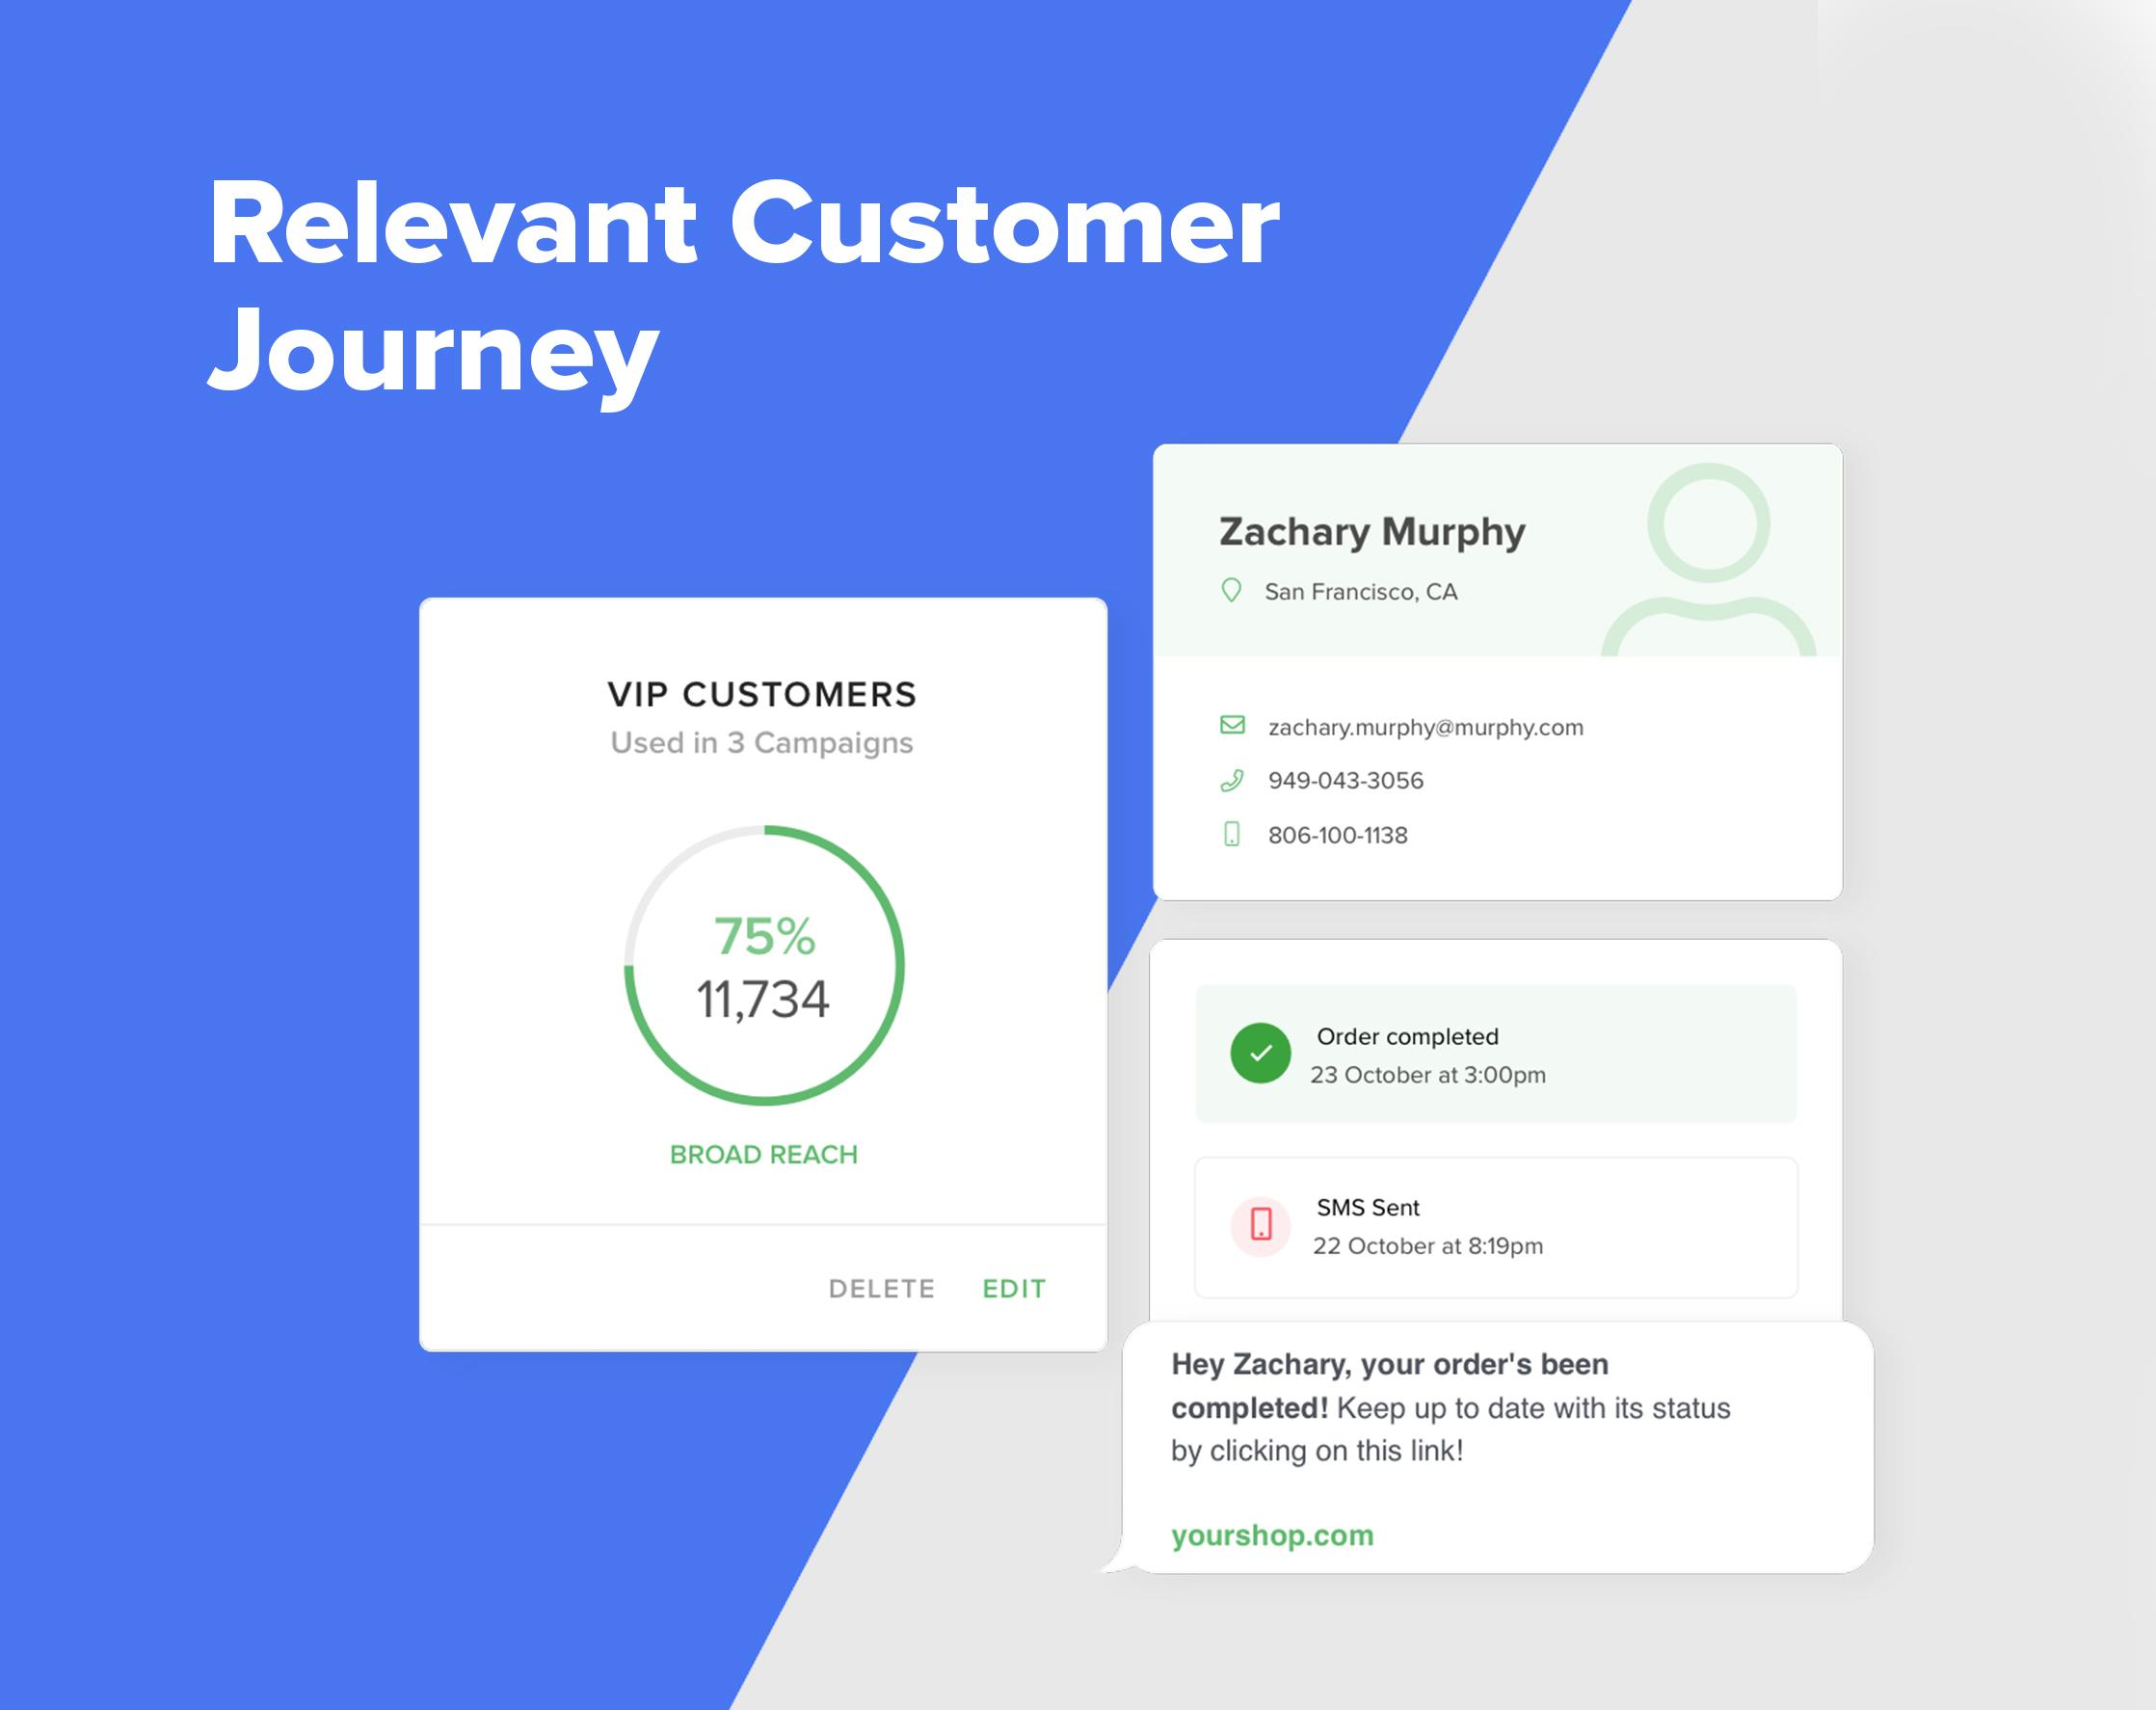 Treat your customers as individuals and send messaging that is relevant to them